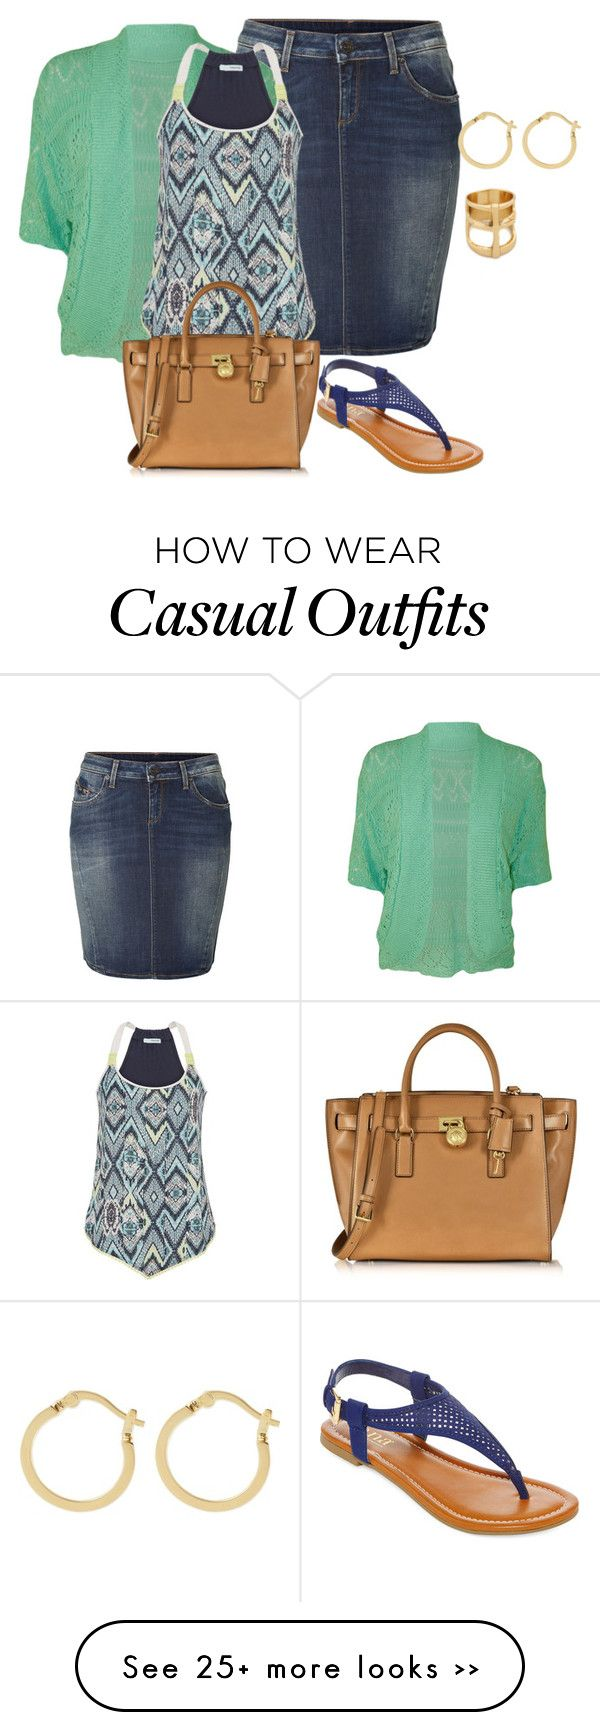 """my plus size denim skirt style look 1/casual office"" by kristie-payne on Polyvore"